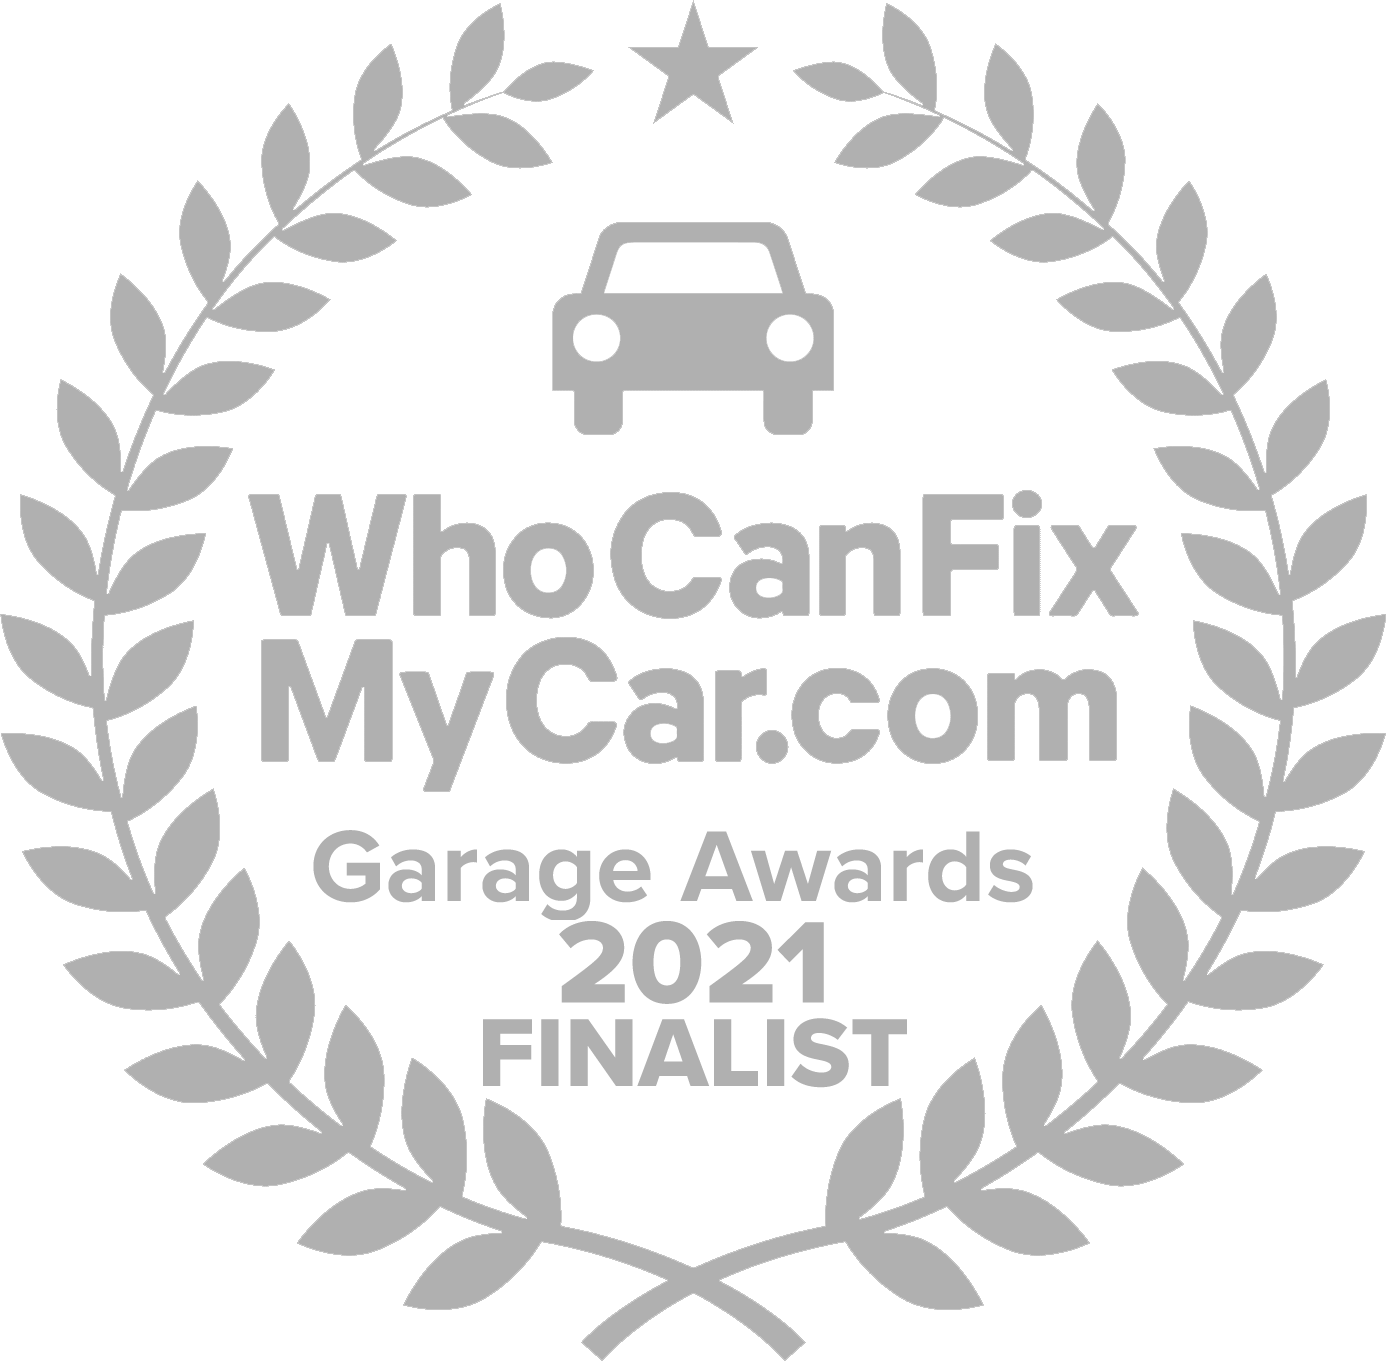 Garage Awards 2021 Finalist